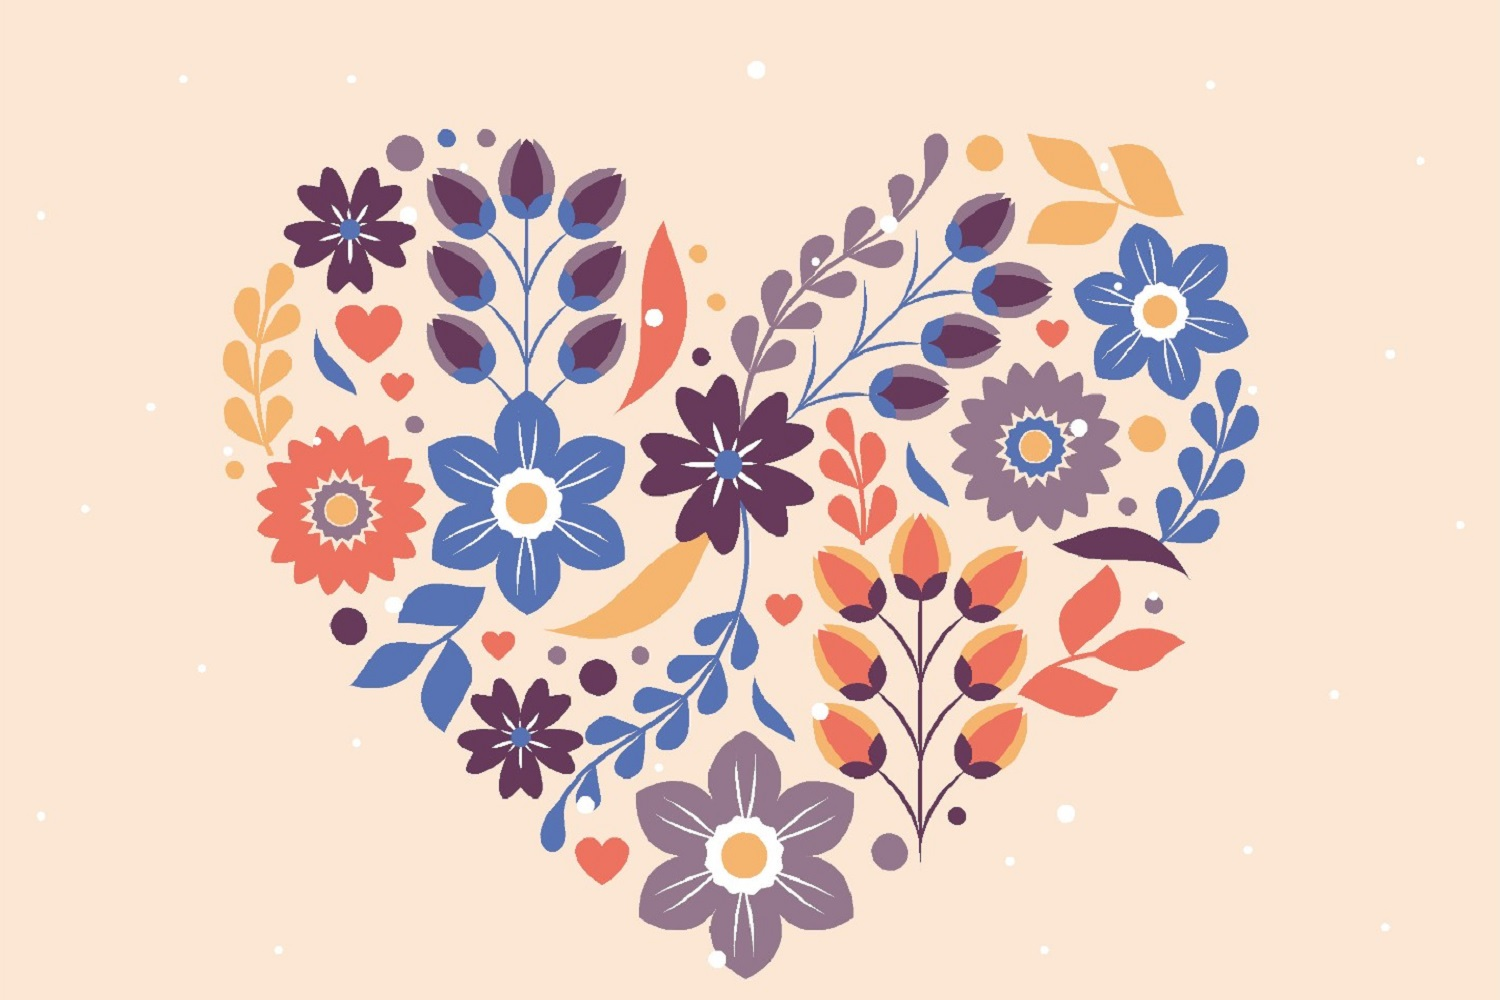 Heart Of Flowers Wallpaper Mural